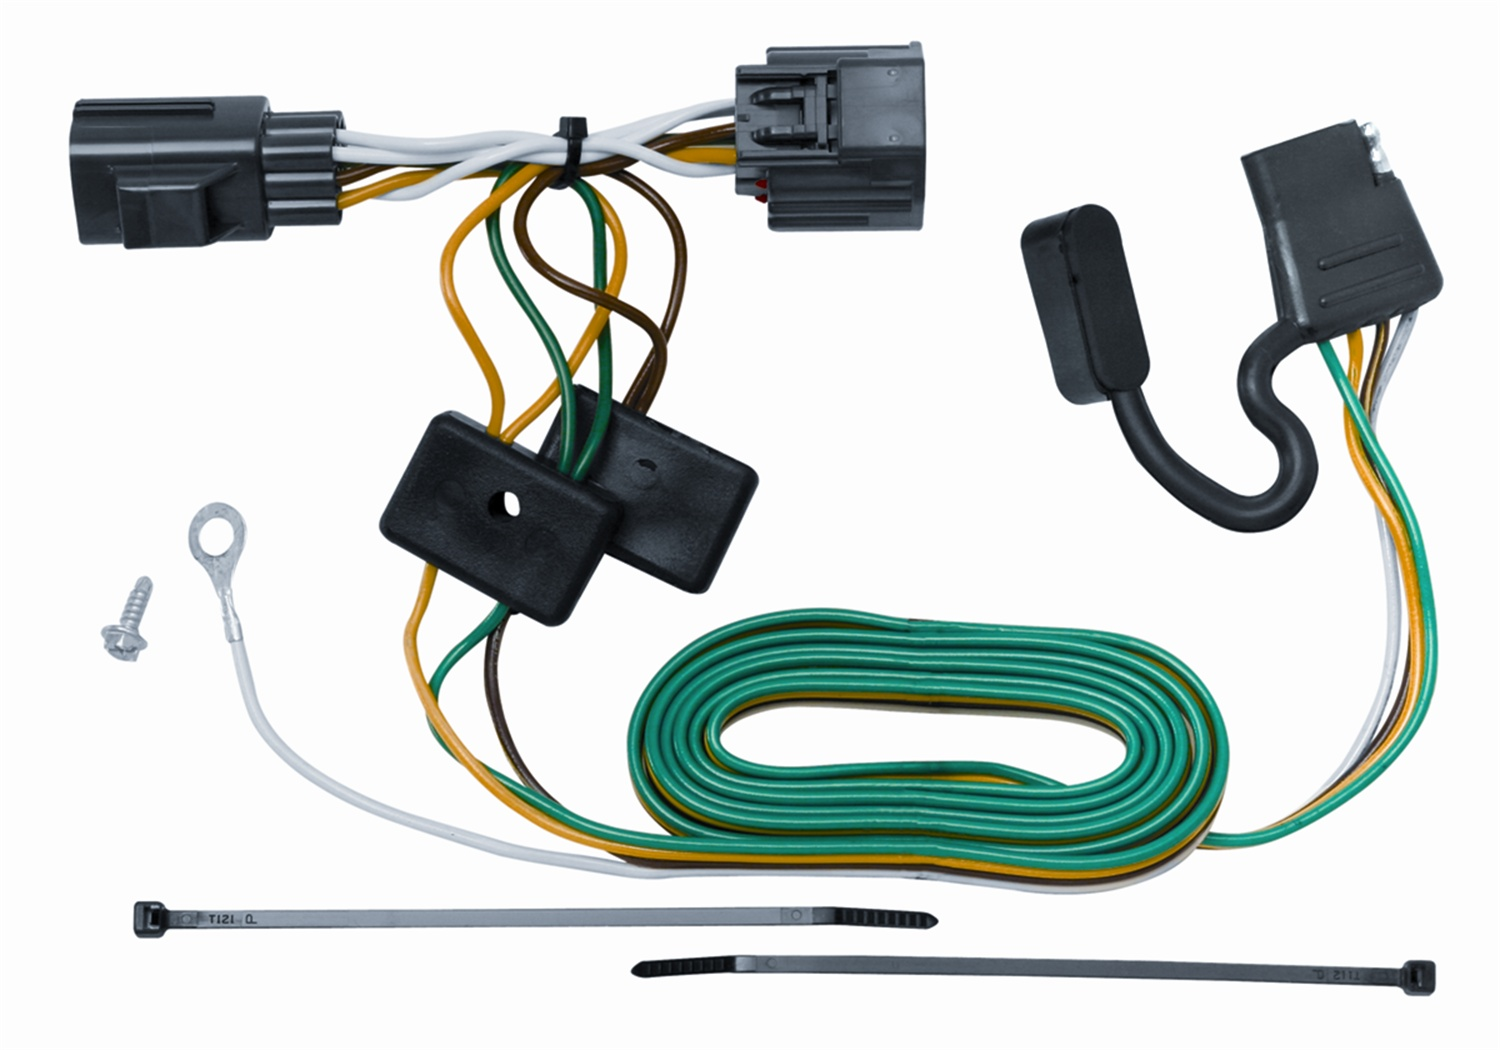 jeep wrangler trailer wiring electrical wiring diagrams 2006 jeep liberty wiring diagram trailer wiring jeep [ 1500 x 1050 Pixel ]